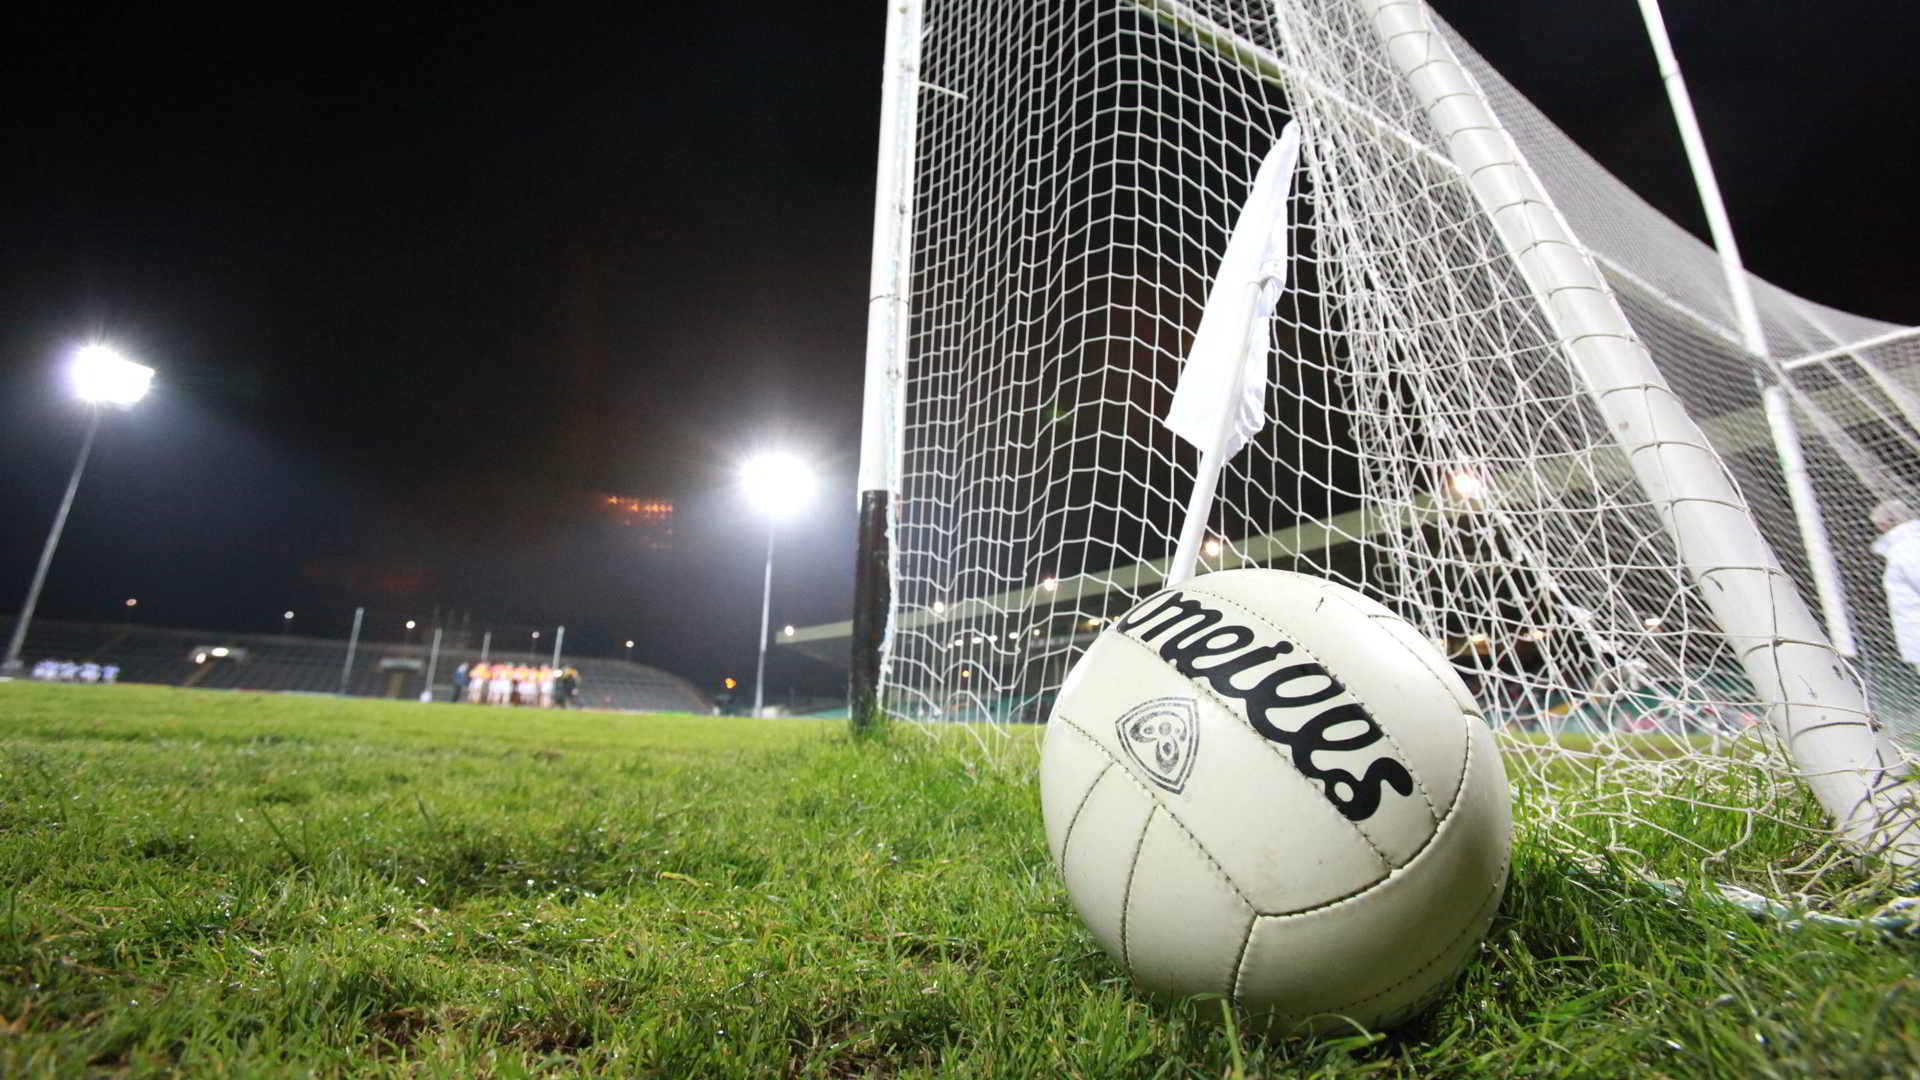 Ballinacourty and Rathgormack set to battle it out for County Minor A Football honours